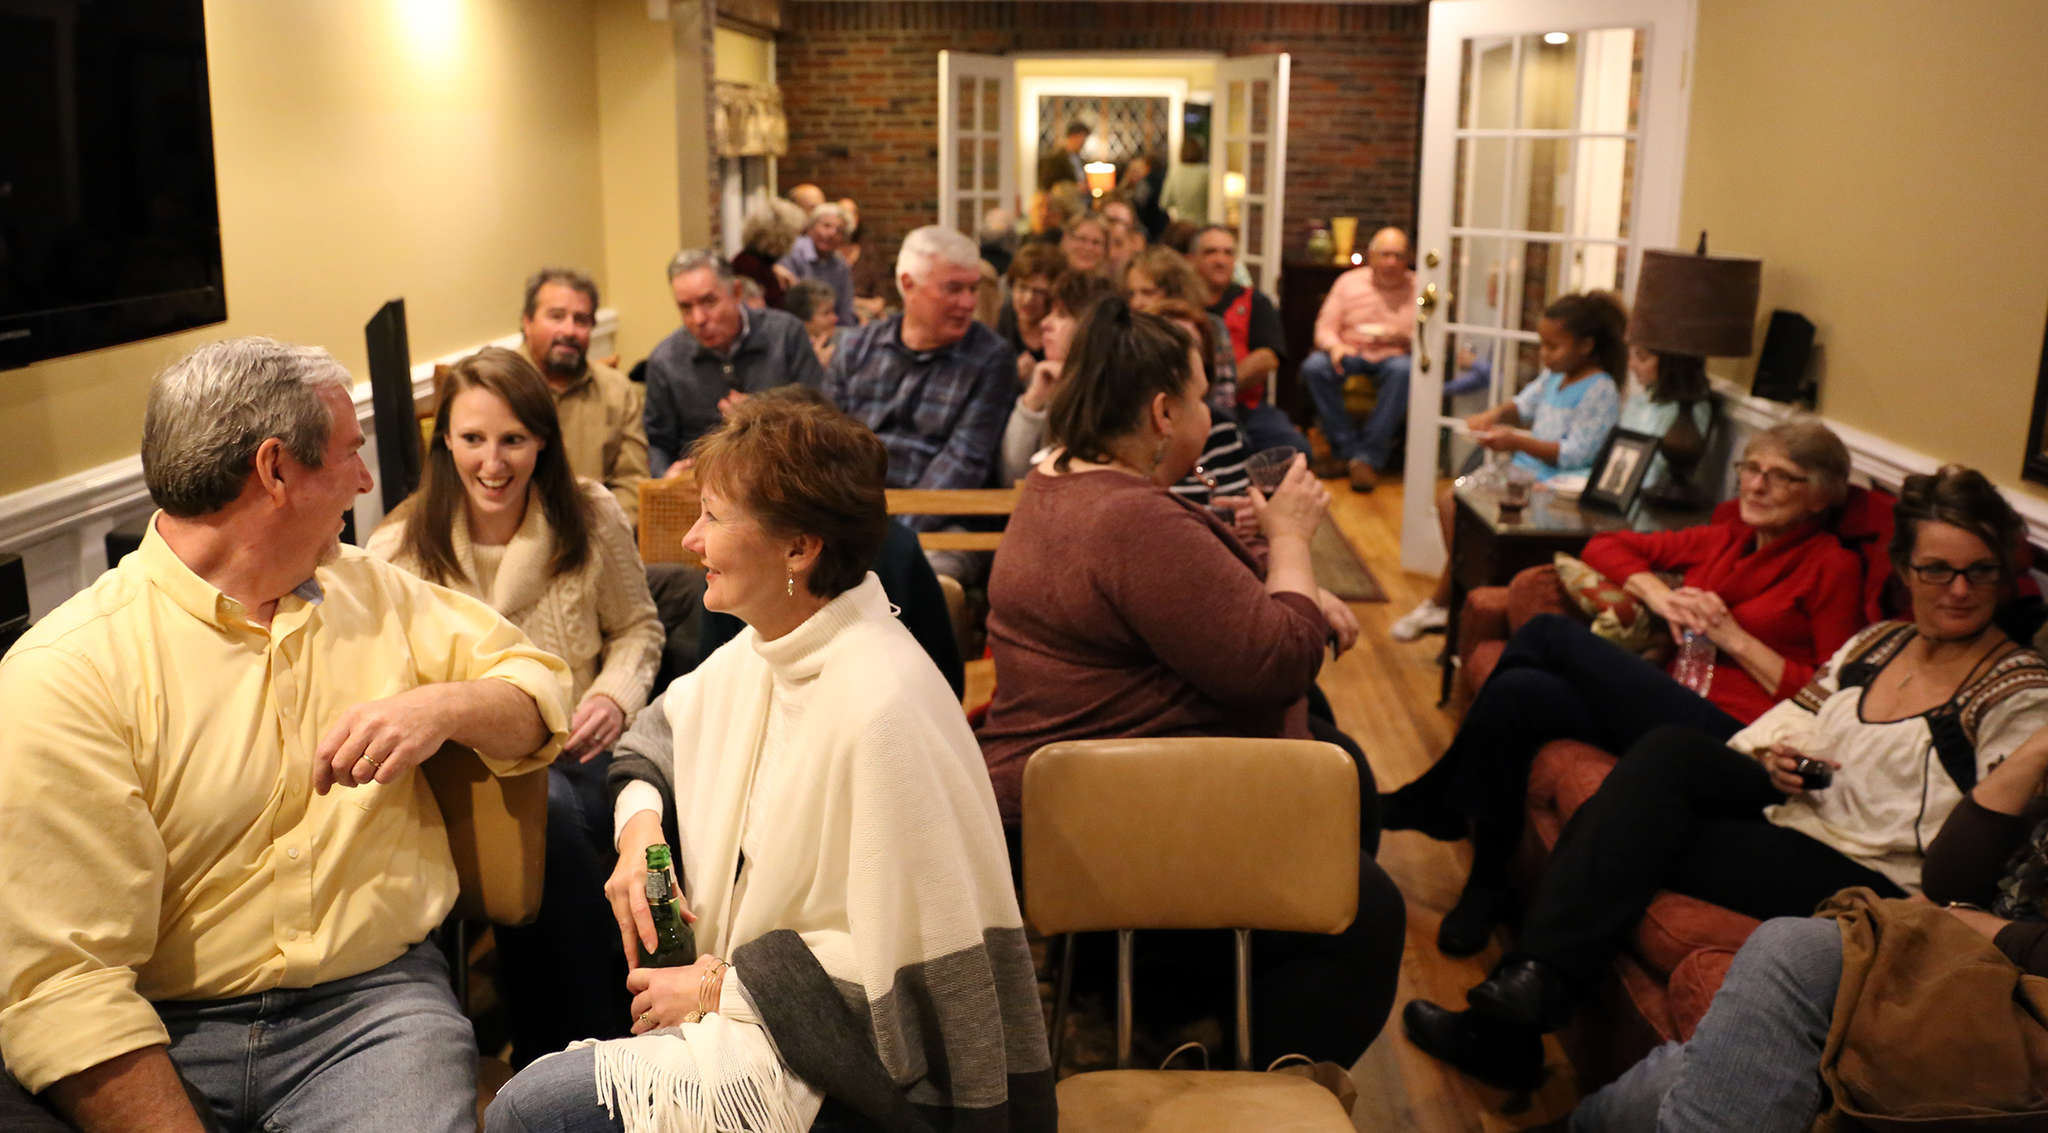 An audience awaits Klein and June´s performance. House concerts like the McHughs´ allow people to listen to a band in an inexpensive, convenient, and convivial space where music takes priority over texting or taking selfies.